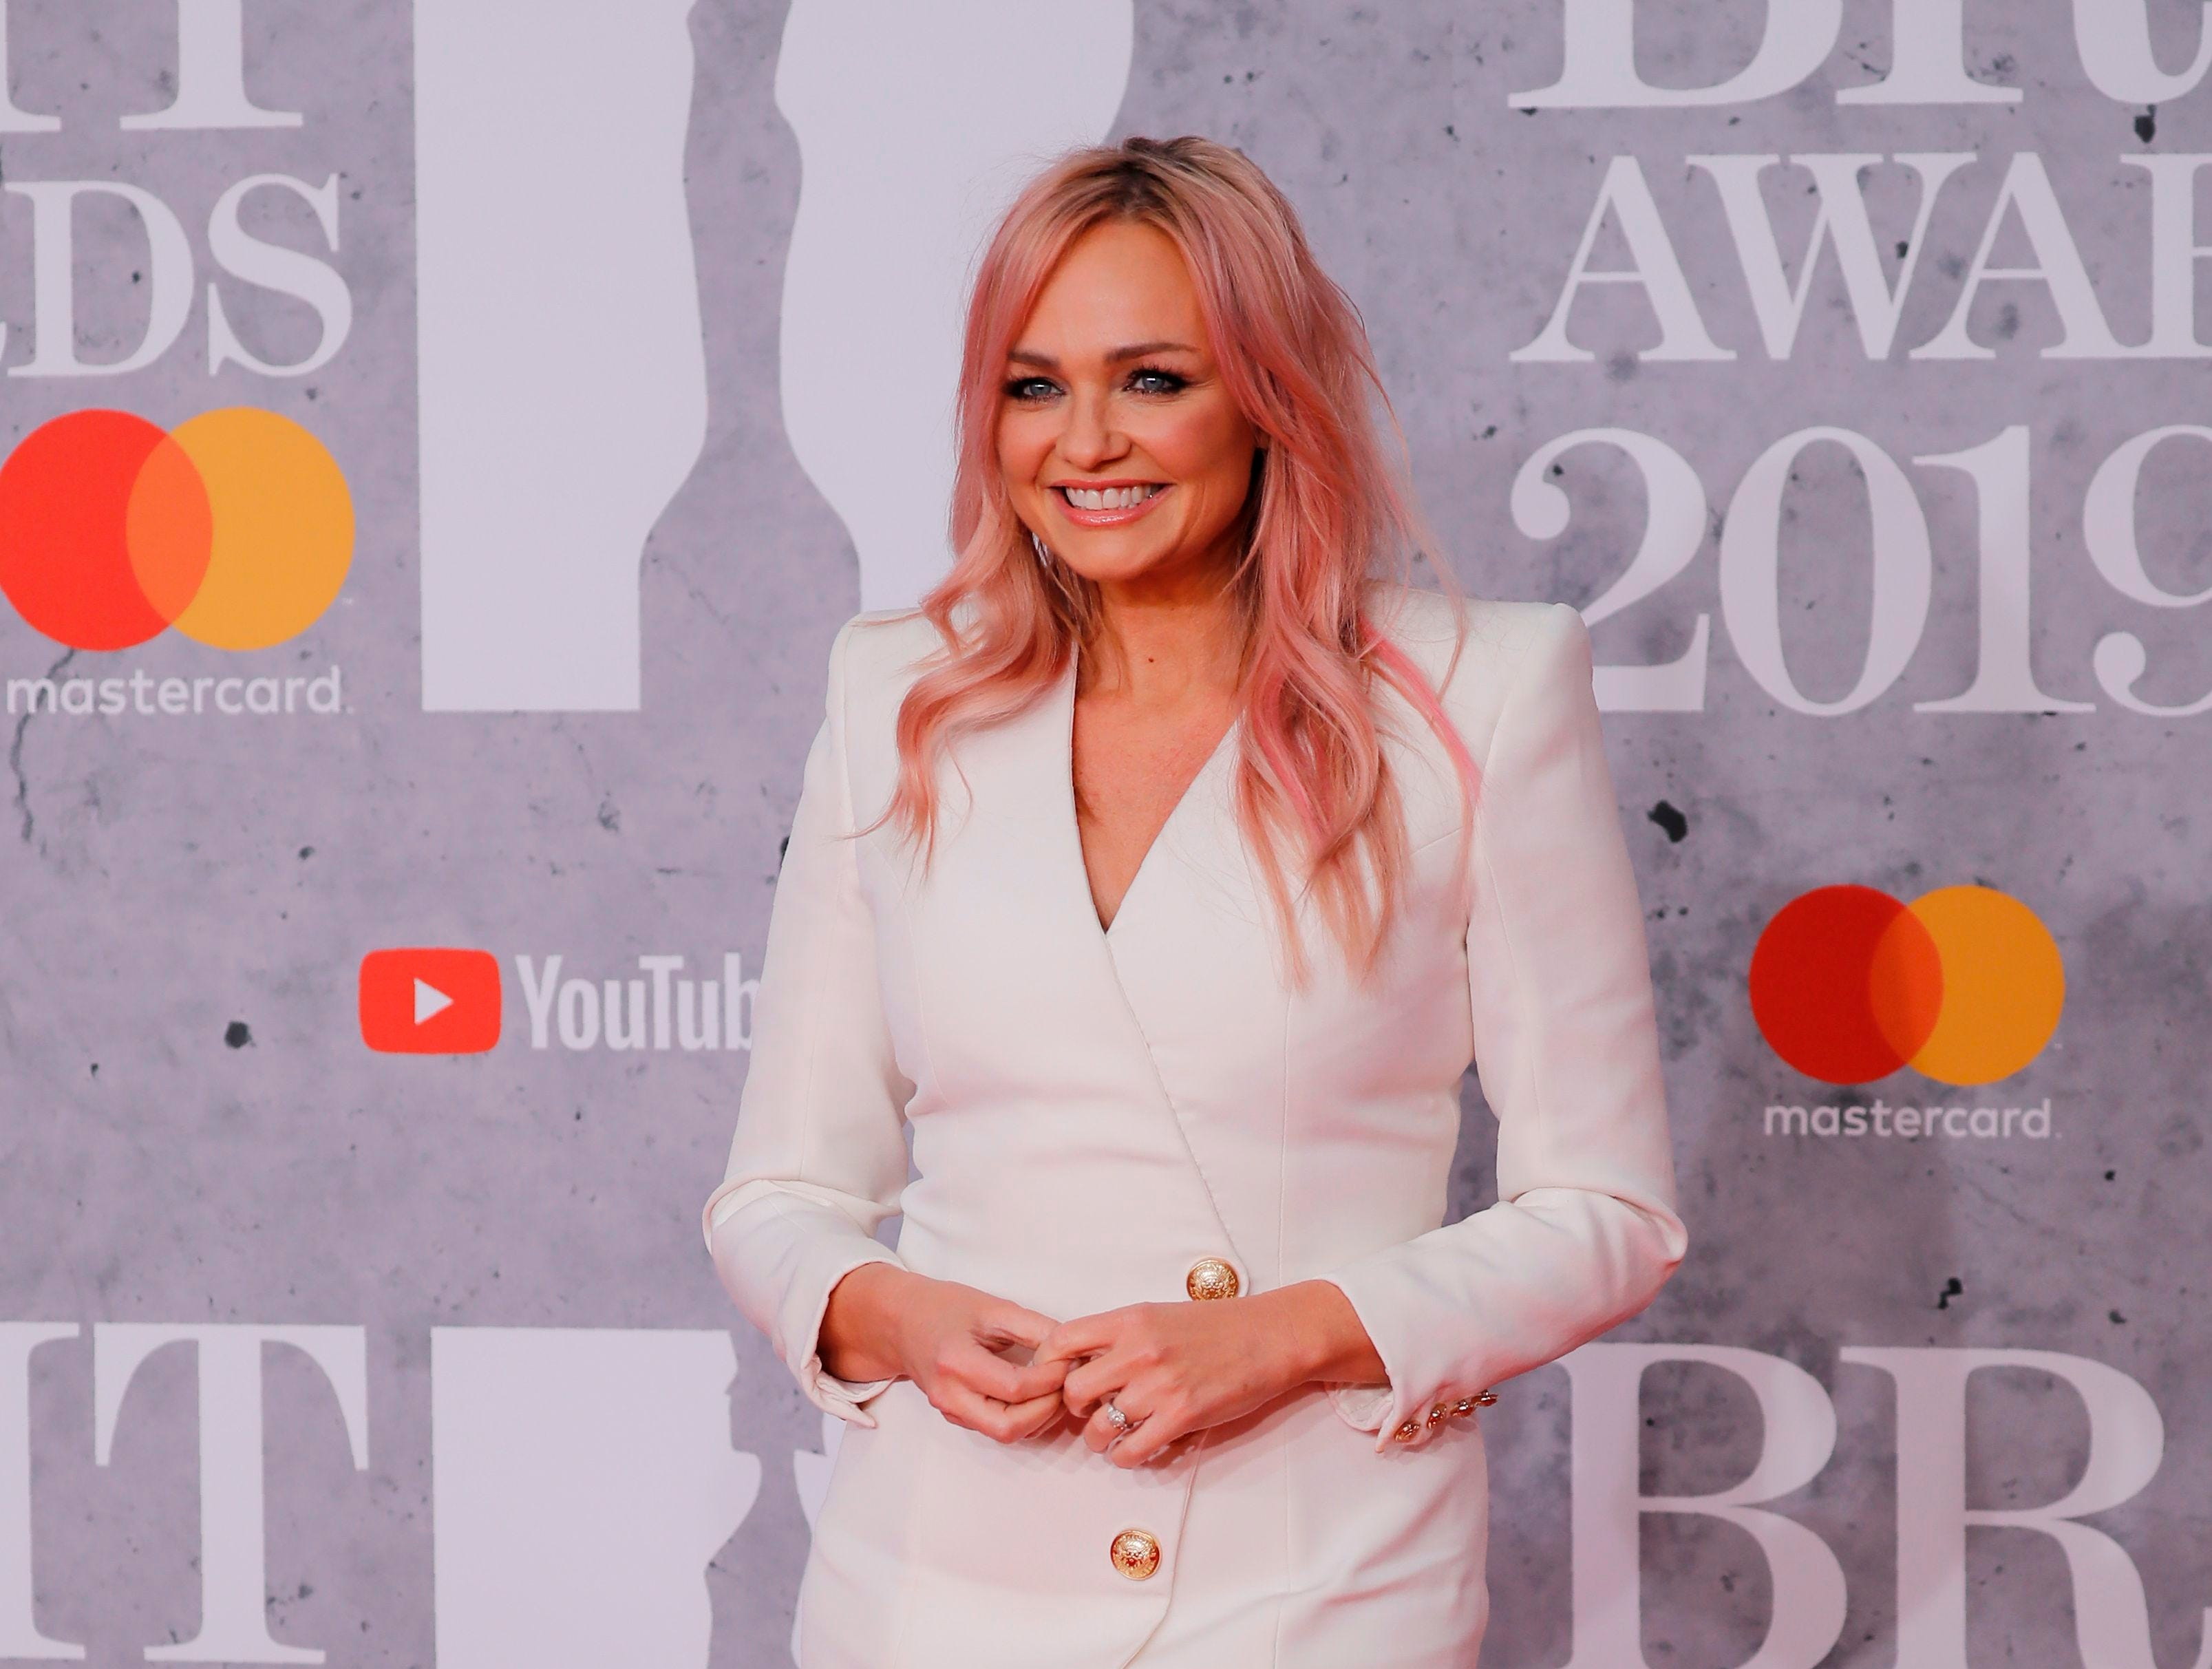 British singer Emma Bunton, member of The Spice Girls, poses on the red carpet on arrival for the BRIT Awards 2019 in London on February 20, 2019. (Photo by Tolga AKMEN / AFP) / RESTRICTED TO EDITORIAL USE  NO POSTERS  NO MERCHANDISE NO USE IN PUBLICATIONS DEVOTED TO ARTISTSTOLGA AKMEN/AFP/Getty Images ORIG FILE ID: AFP_1DO10R